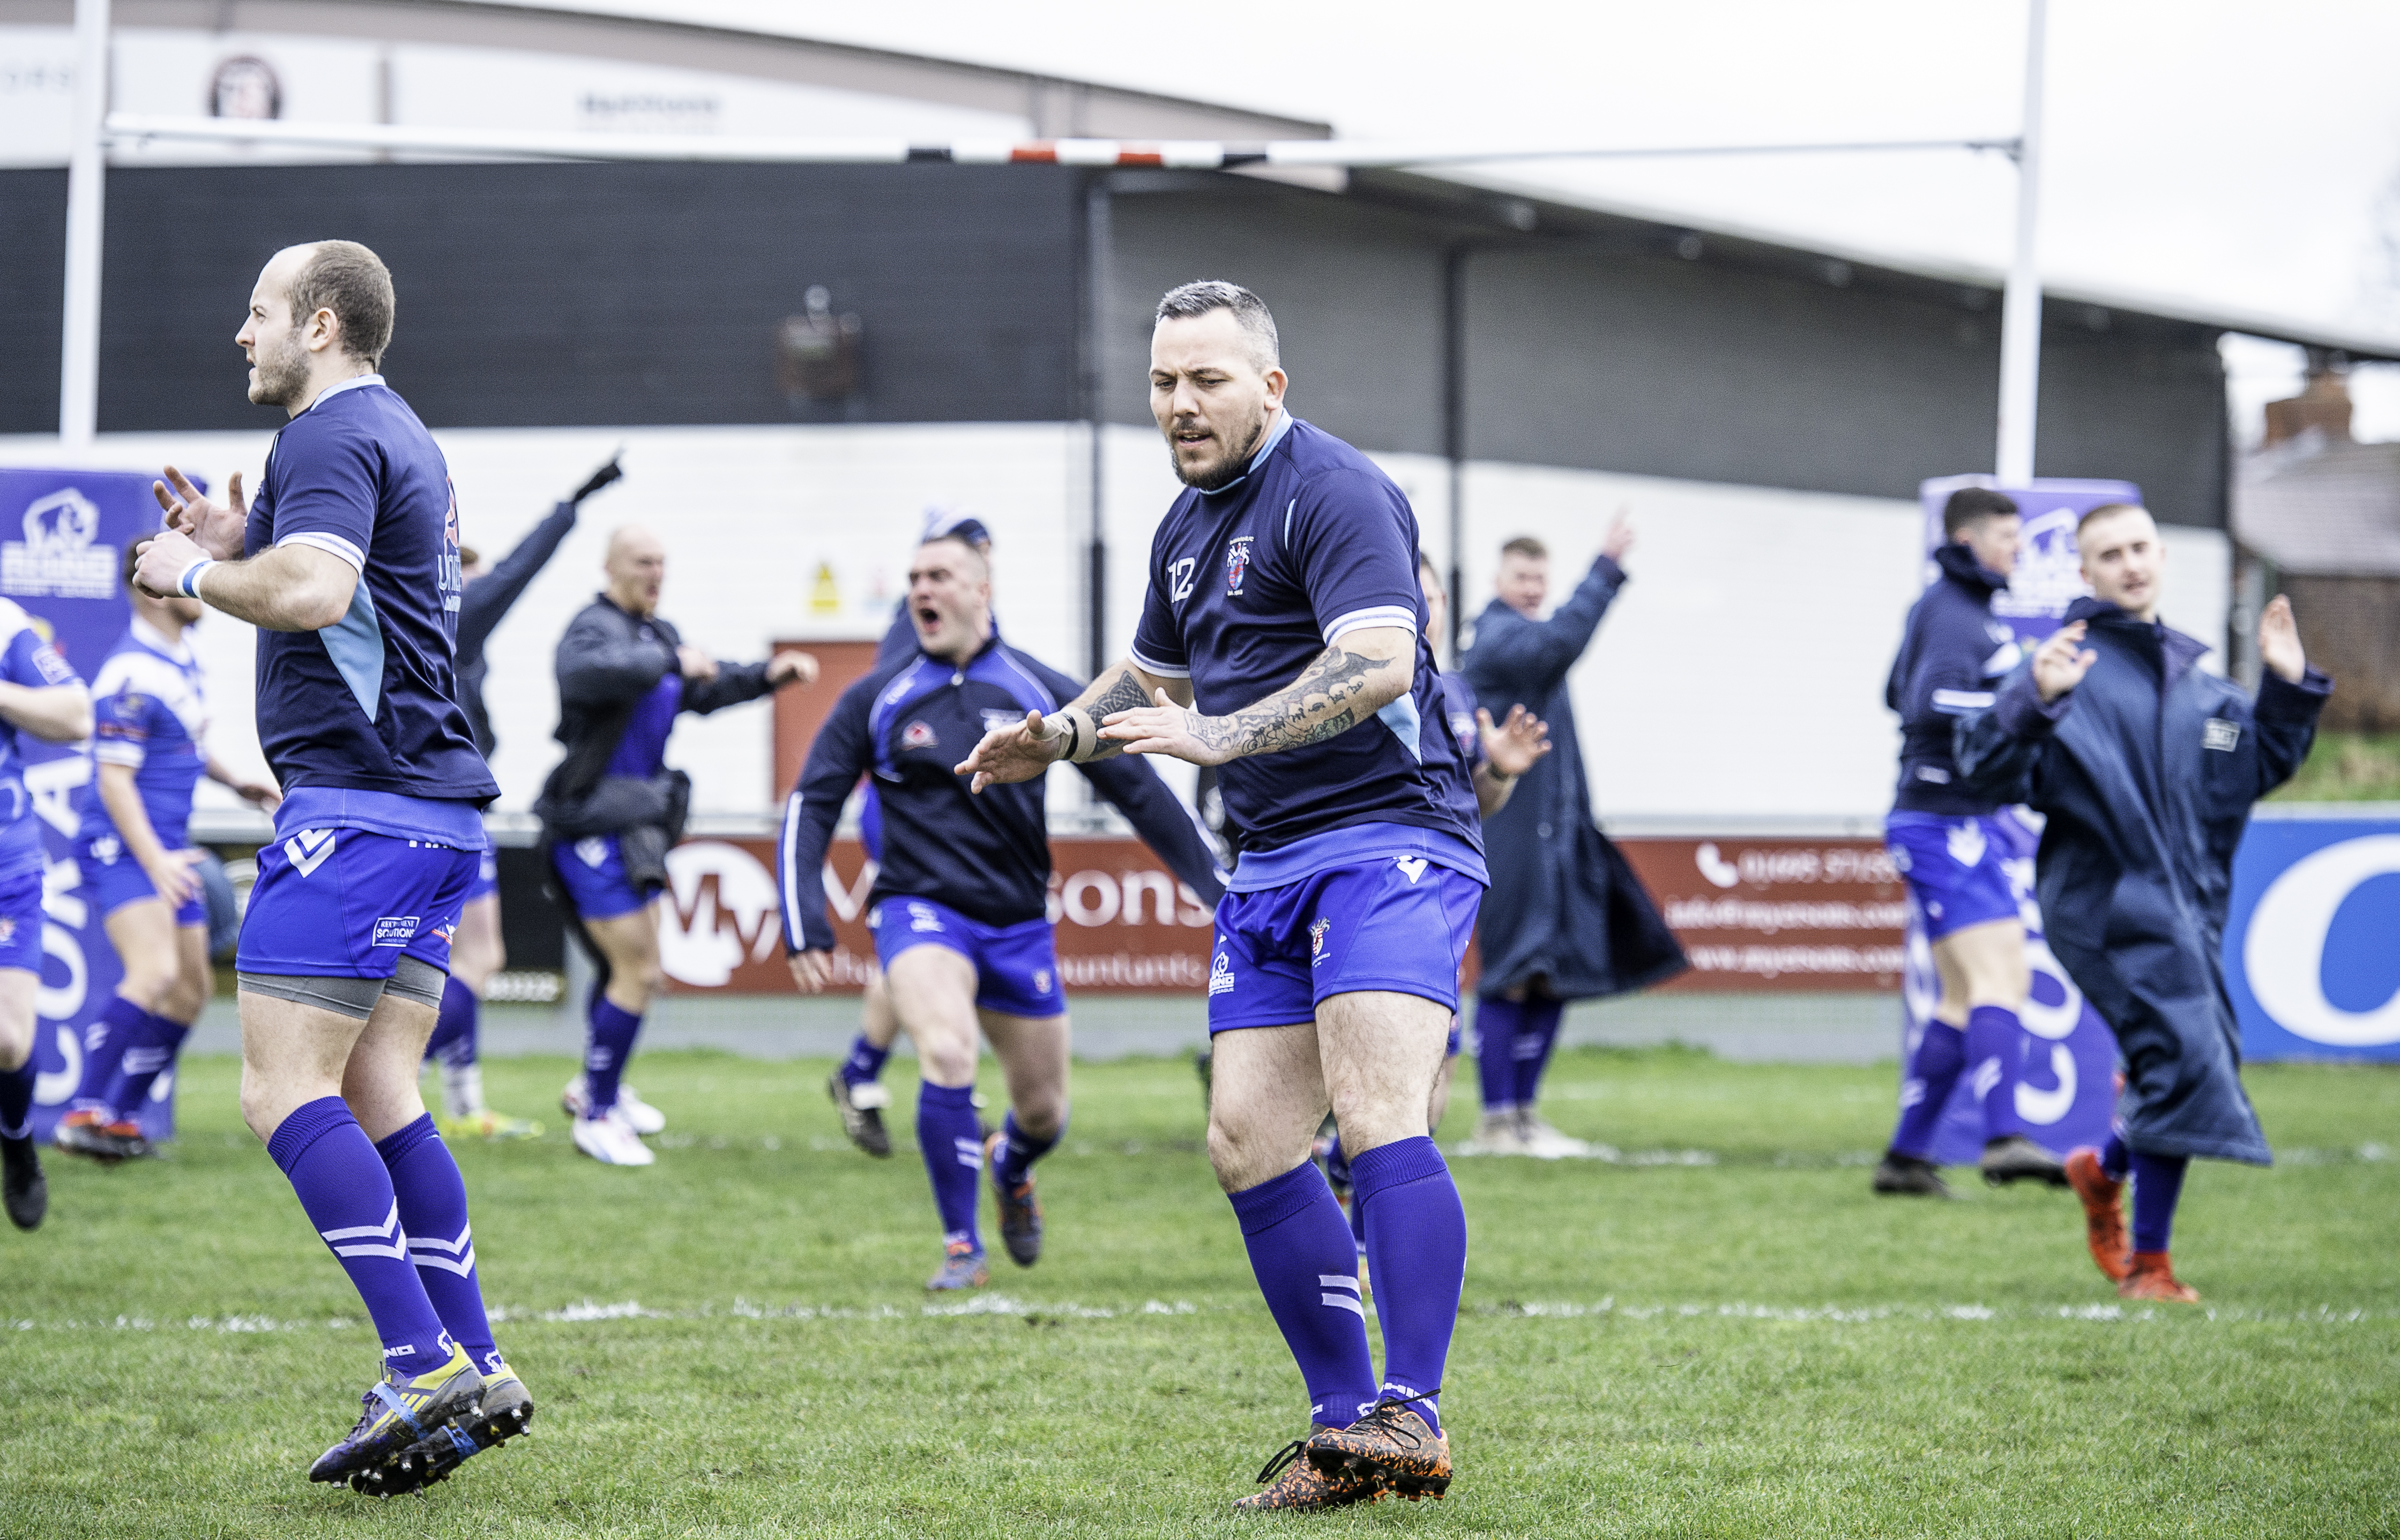 Preview: Rochdale Mayfield v North Wales Crusaders